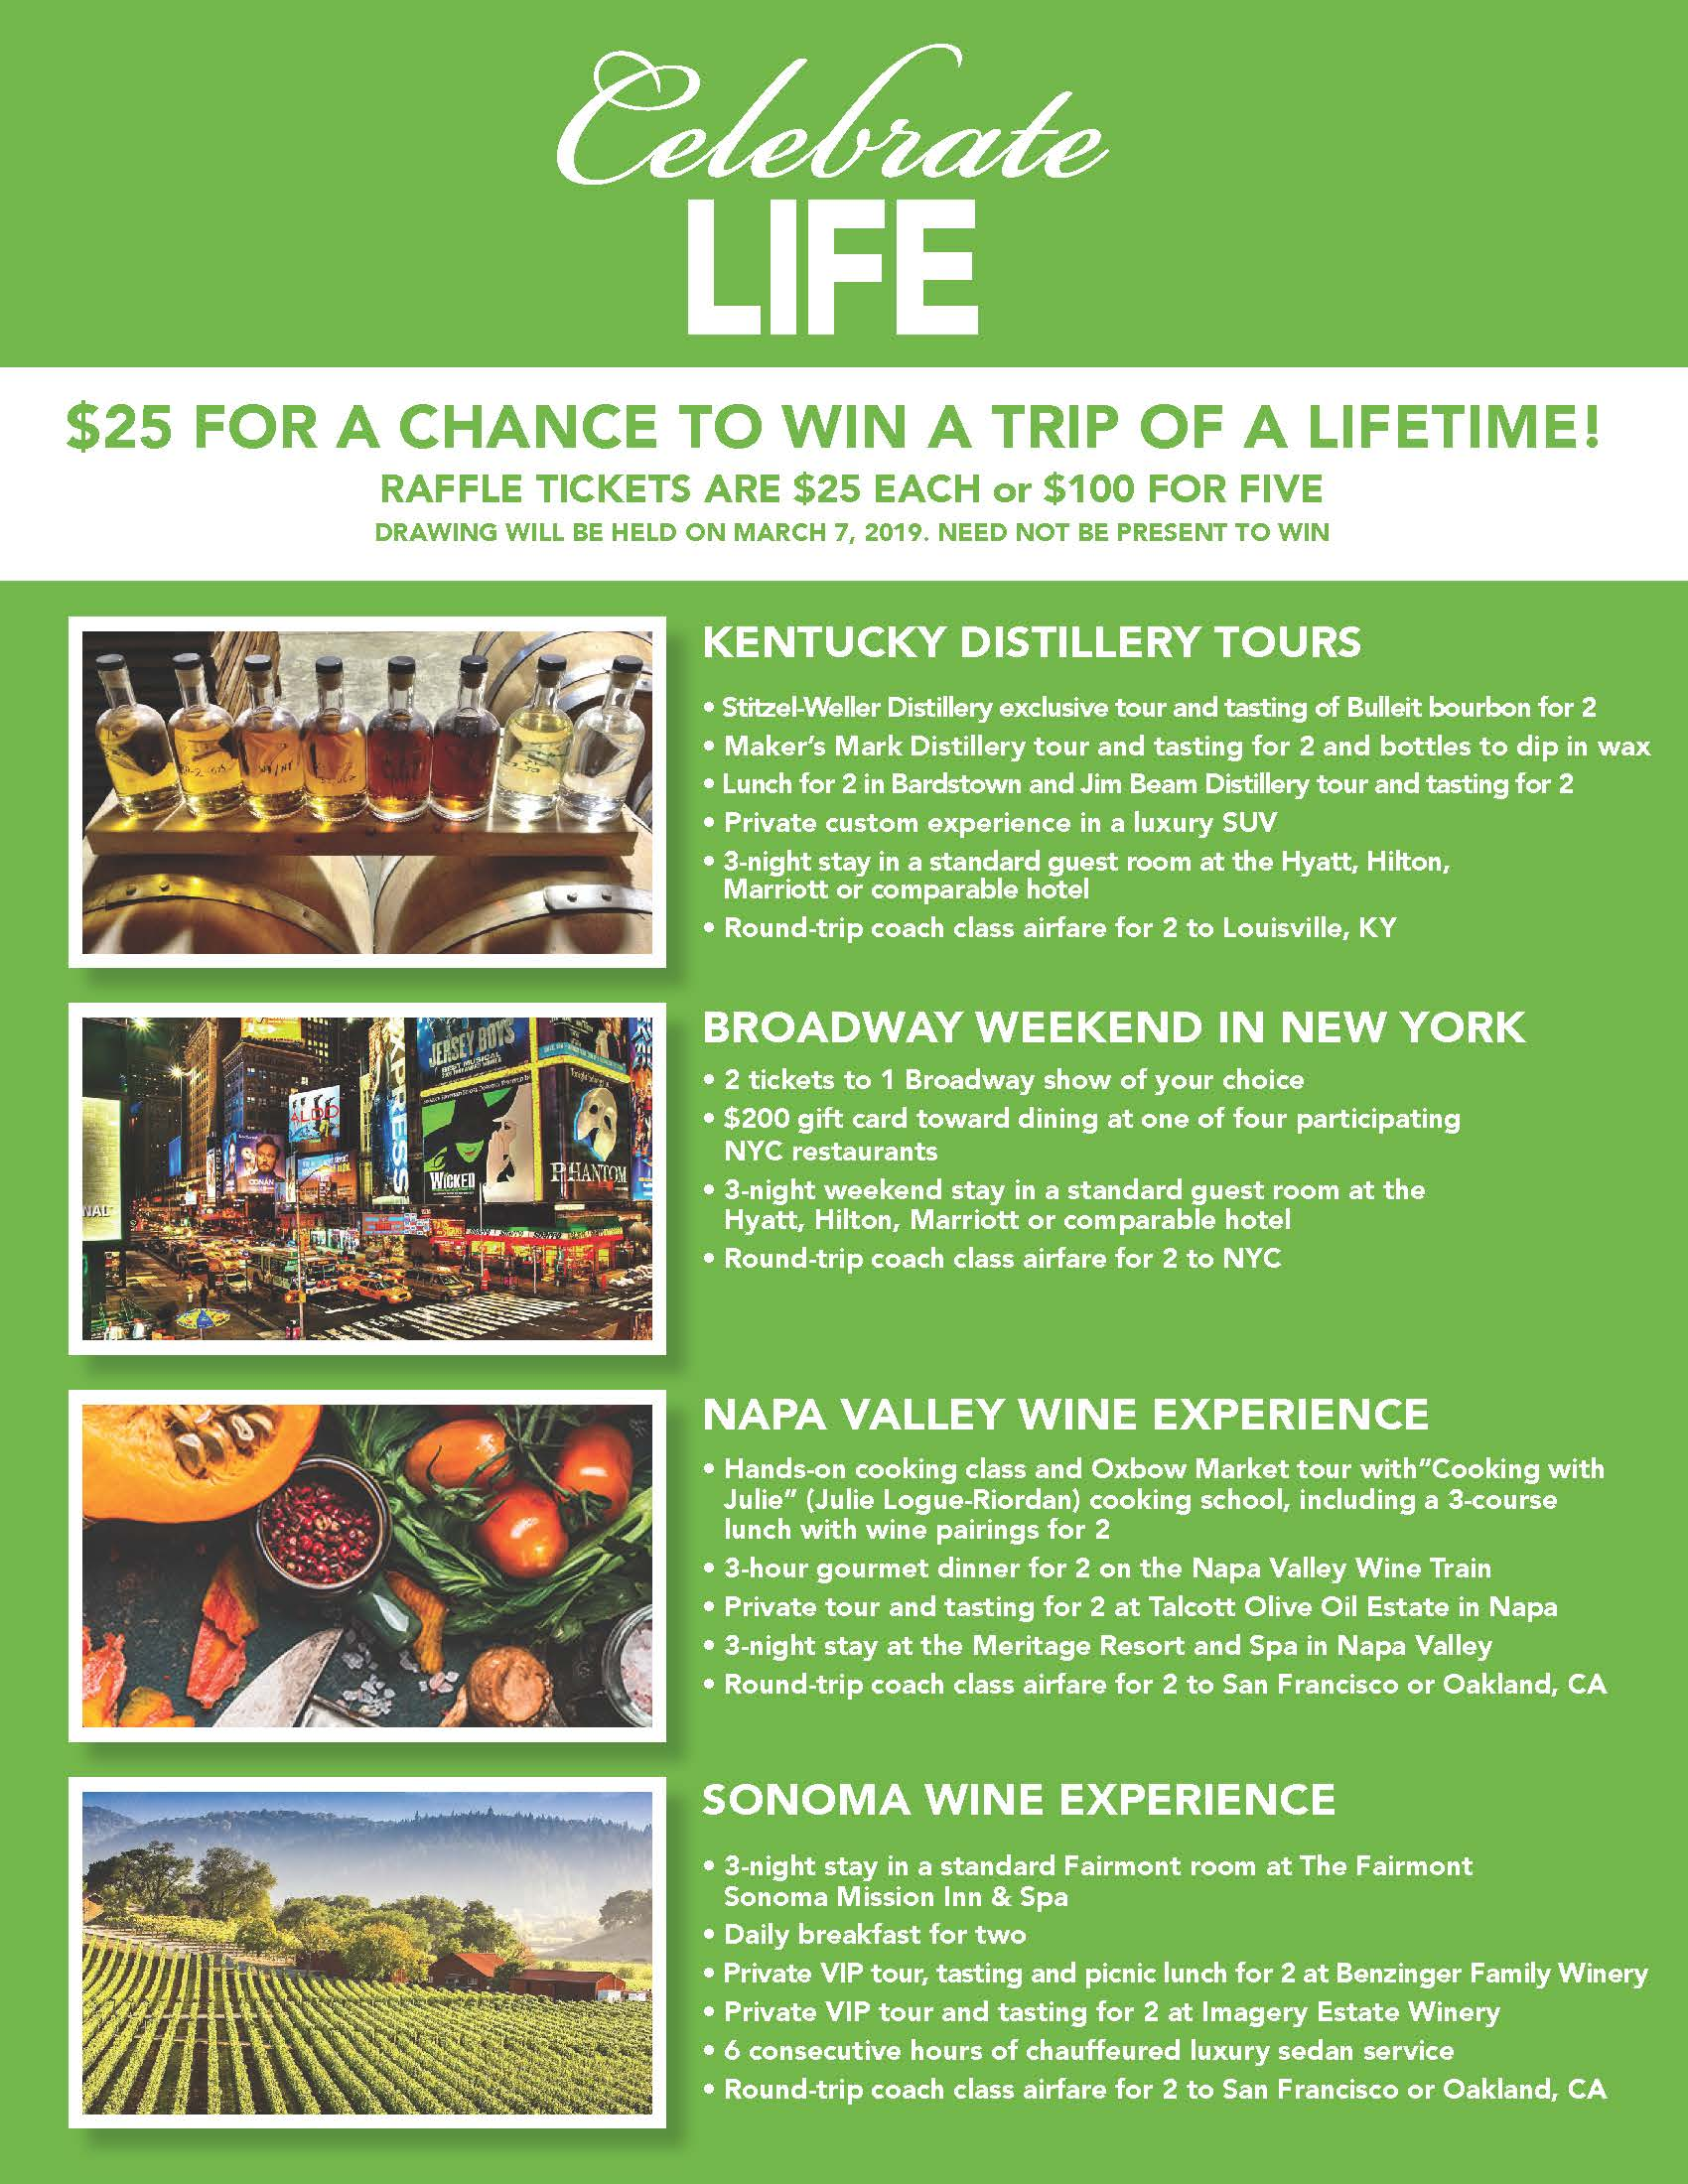 find ticket prices and details below click here to purchase your celebrate life raffle tickets